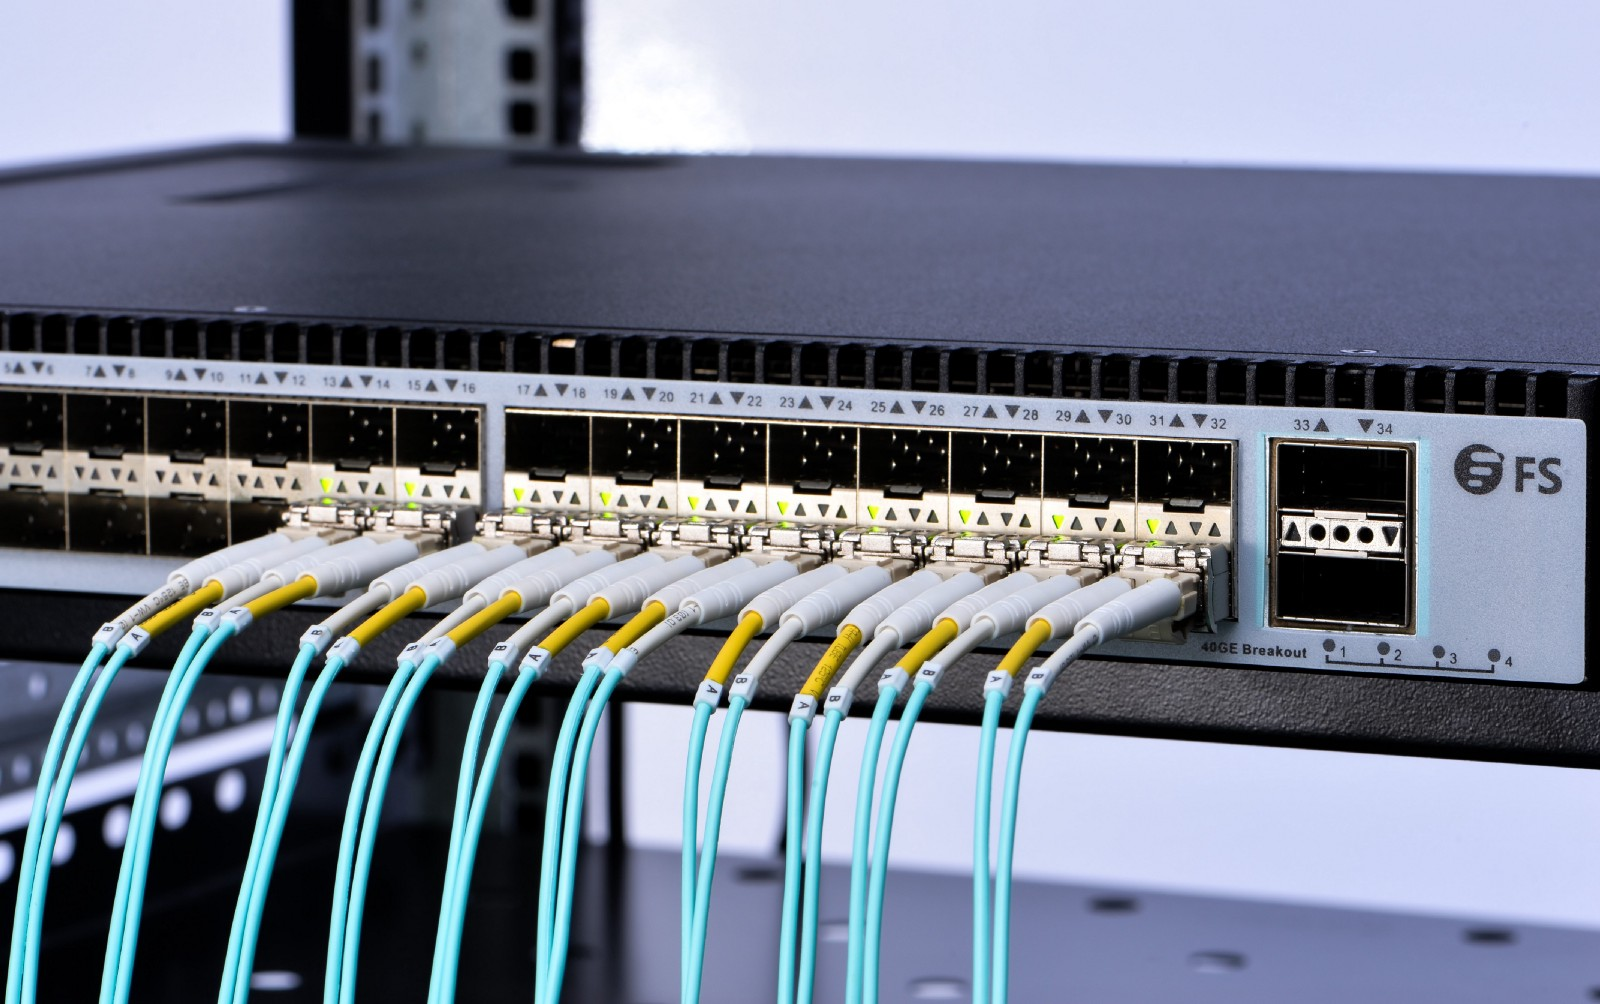 Patch Panel Vs Switch Whats The Difference Sylvie Liu Medium Internet Wiring Closet In Ethernet Lan Or Wan Modern Network Usually Determines Which Output Port To Use By Address